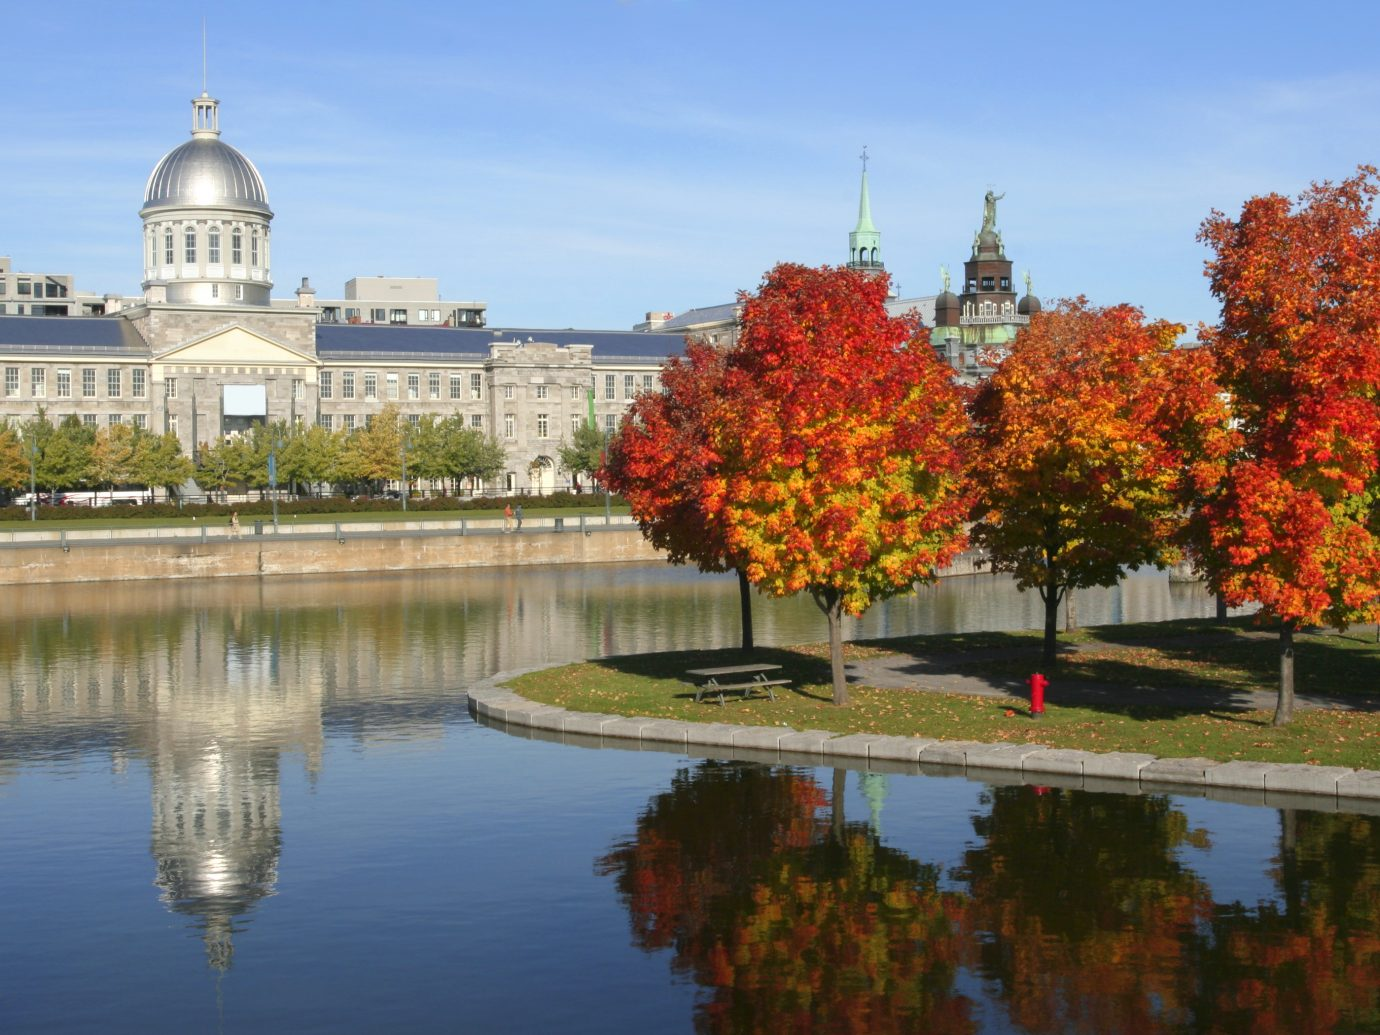 Old Montreal, Bonsecours Market relections in autumn, Quebec, Canada